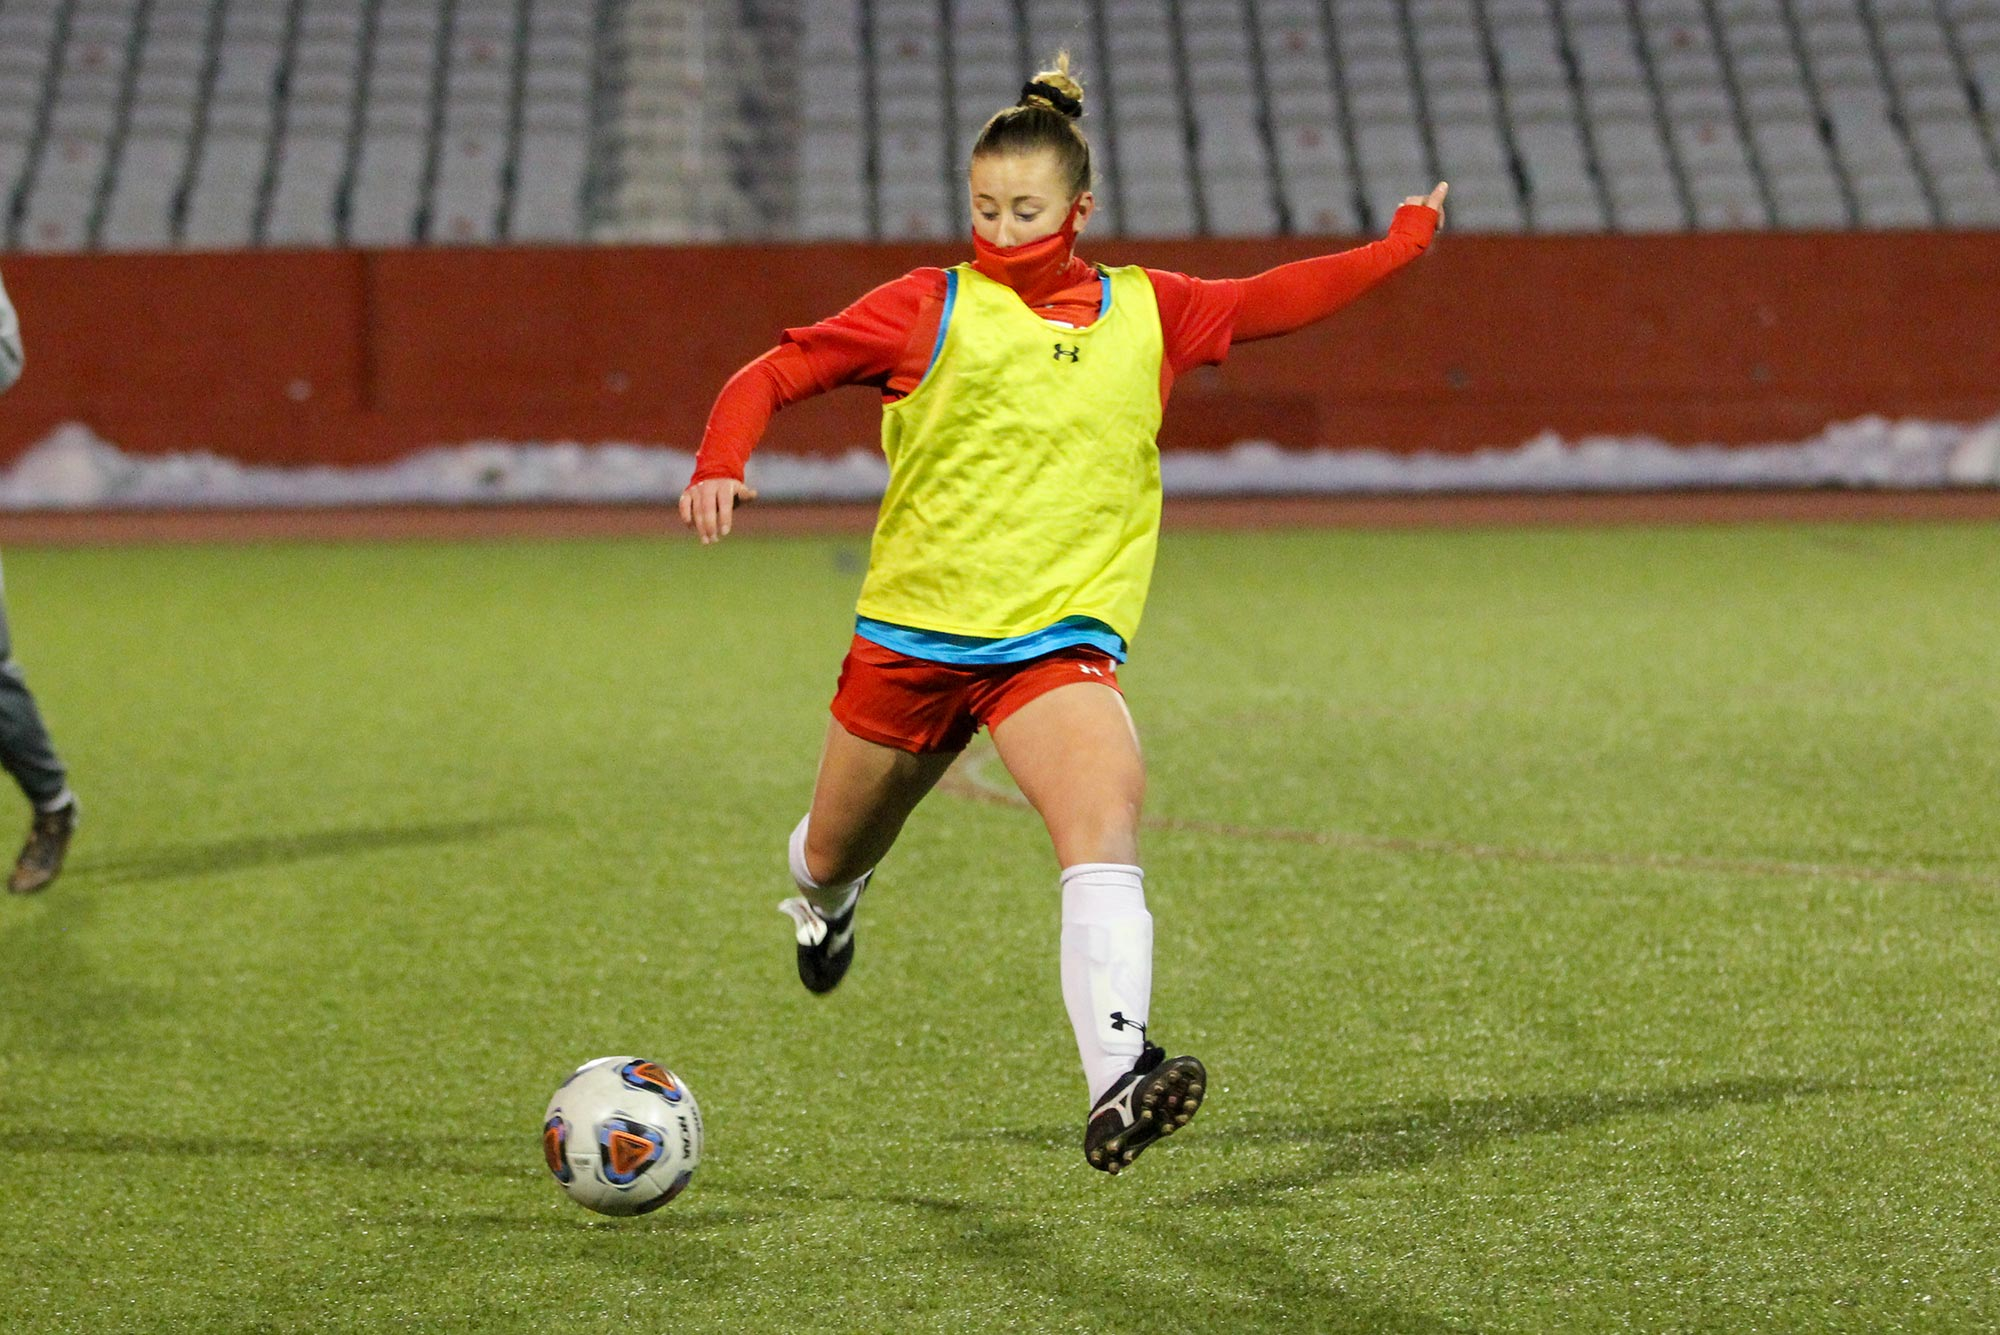 Photo of Ann Marie Jaworski (CAS'20, Wheelock'21) in a red long sleeve, shorts, and face mask, with a bright yellow practice pinny, about to strike a soccer ball. Empty bleachers and the foot of a team mate are seen in the background.